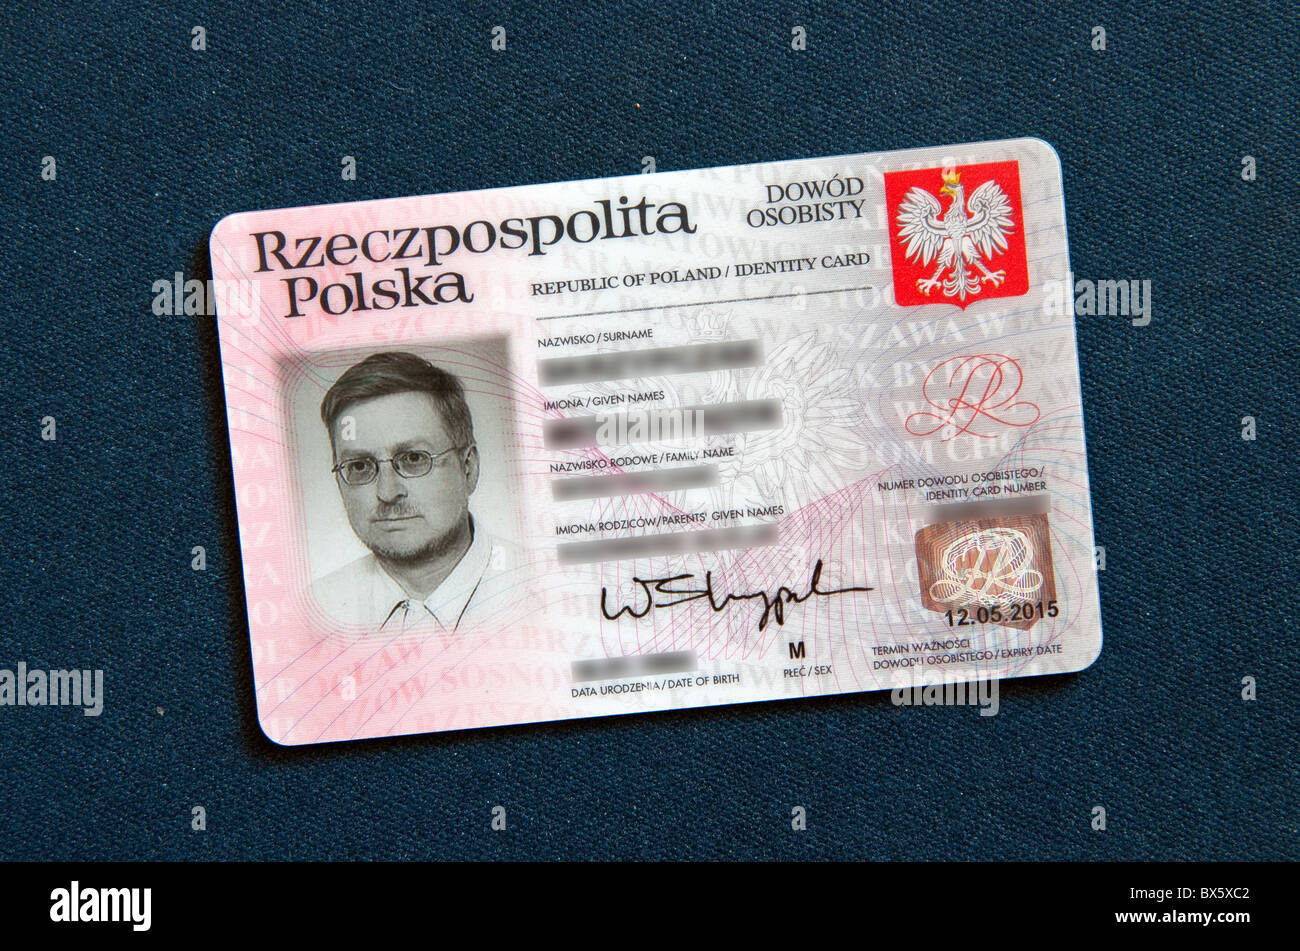 33321906 For European Identity Alamy In Traveling Card Stock Union Valid - Countries Photo Polish